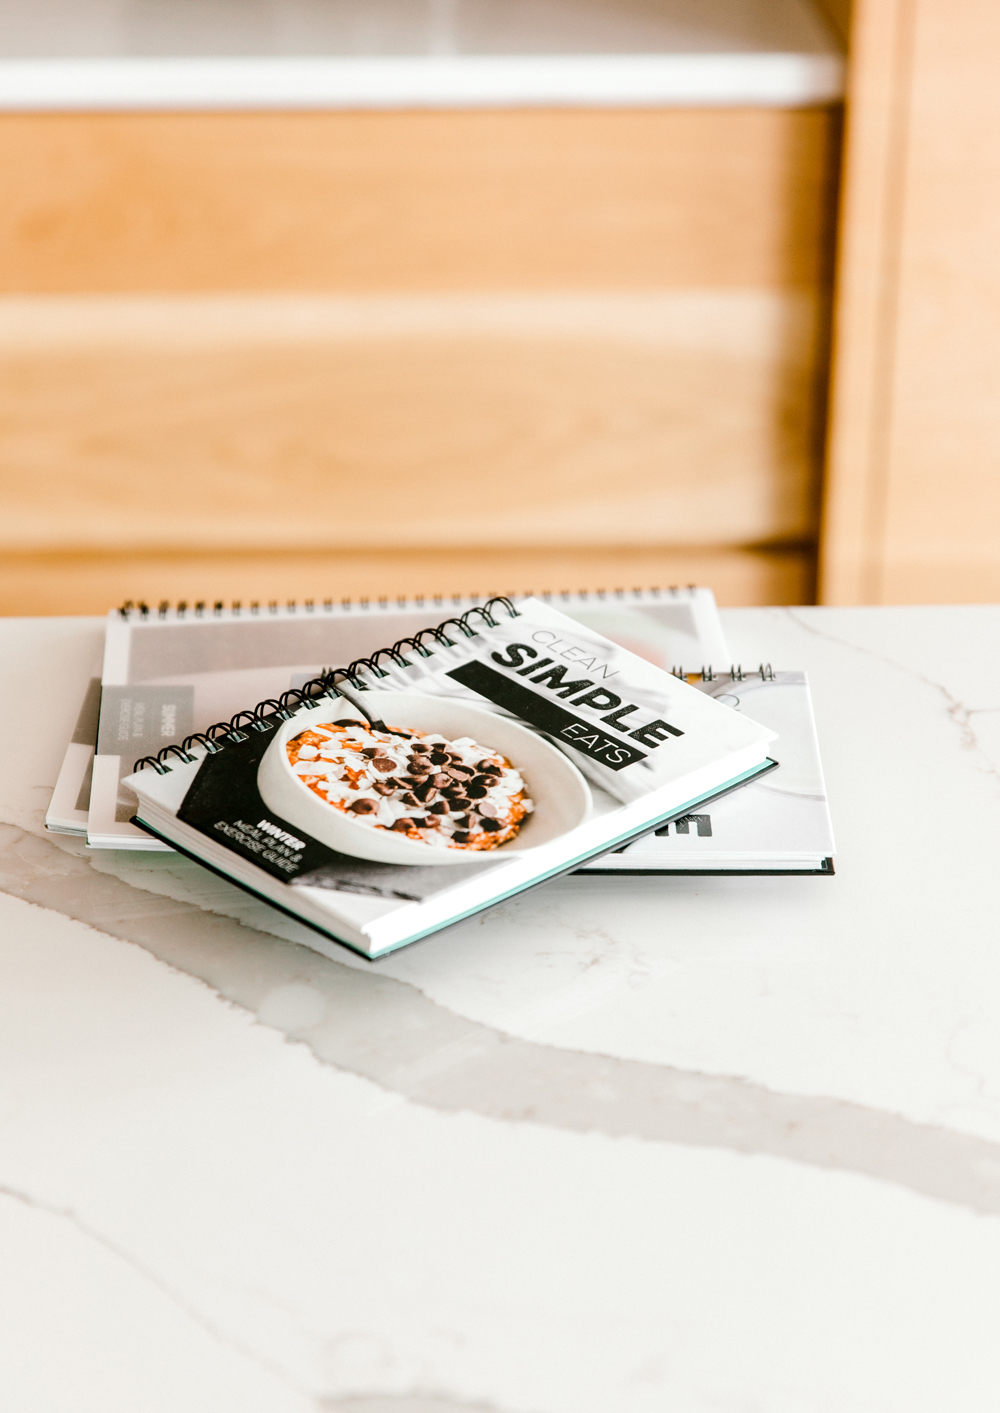 Kailee Wright Meal prep